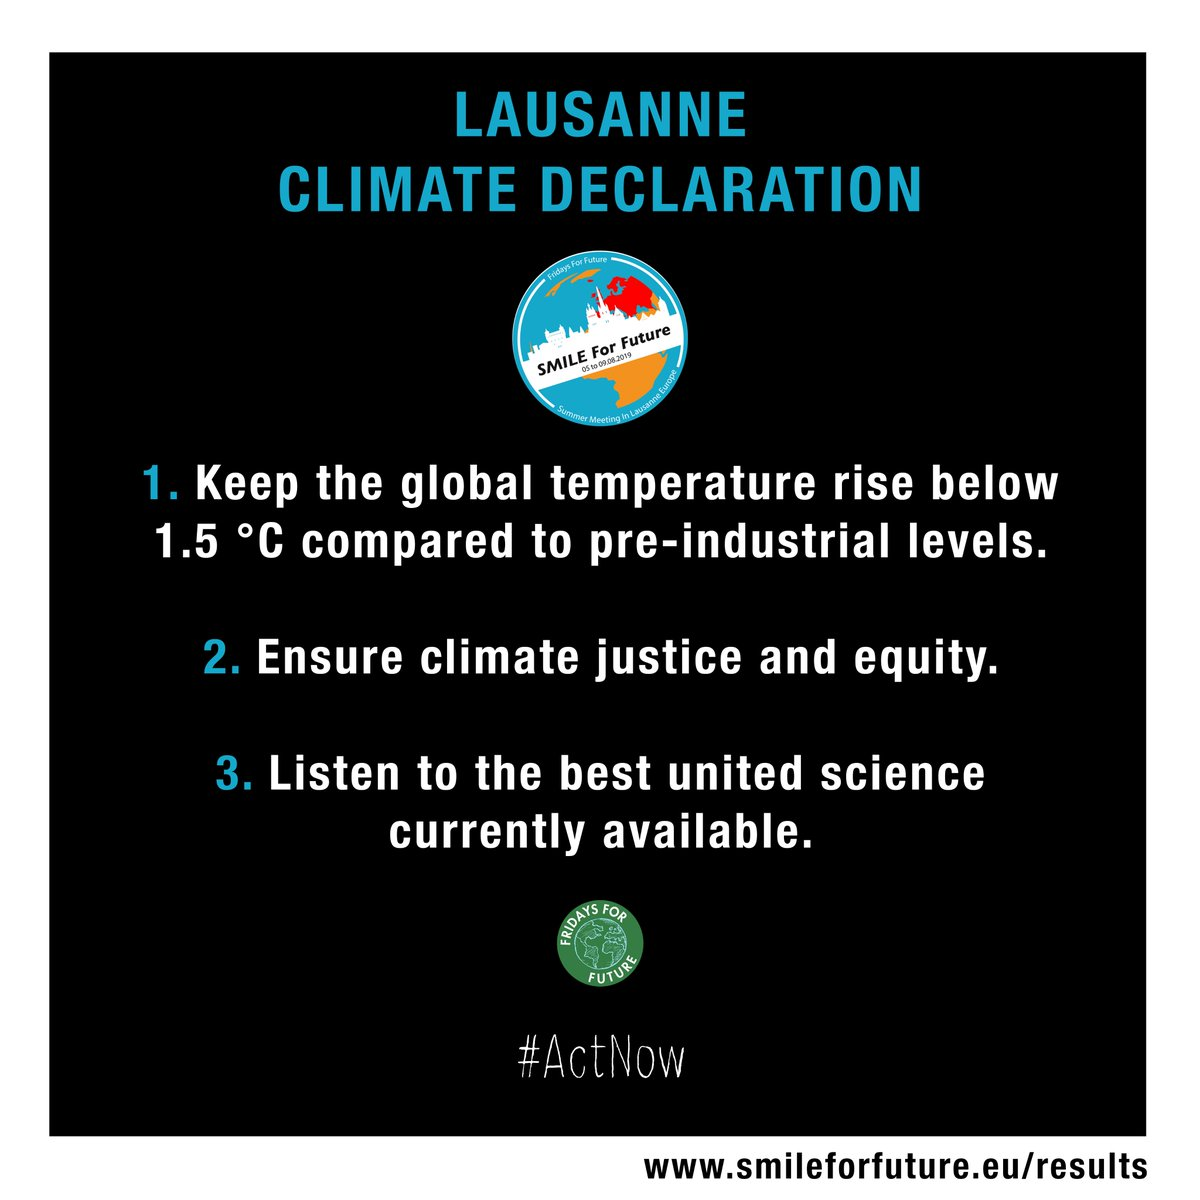 This Friday it is our honour to announce the official release of the #LausanneClimateDeclaration!🌍✊ 400 young activists from 38 countries unite behind 3 essential demands and 1 clear call to #ActNow. What have YOU been doing about the #ClimateEmergency today?🔥